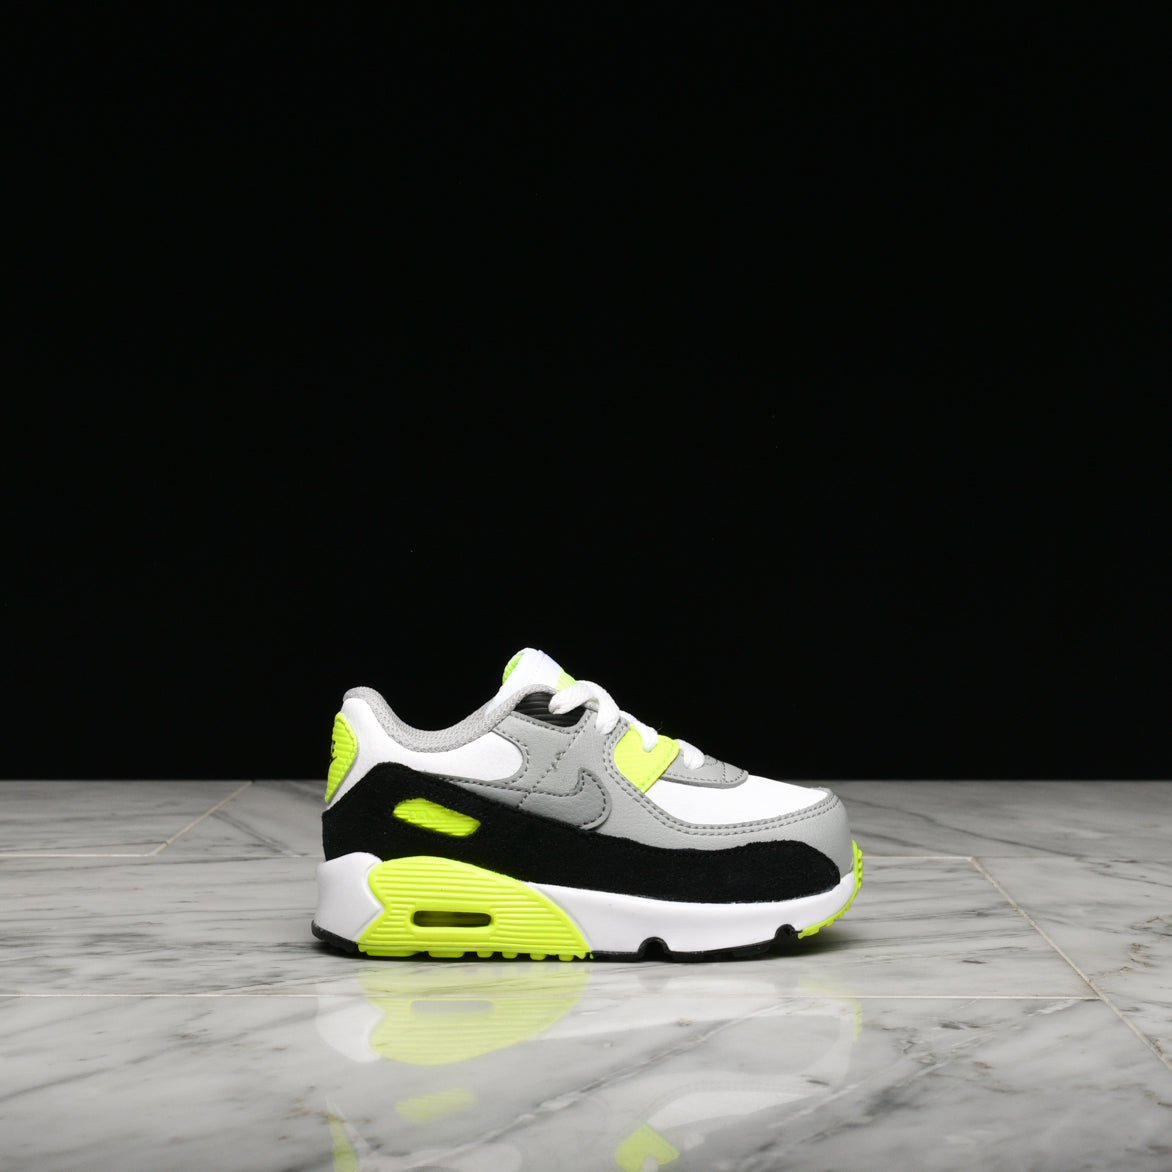 Air Max 90 Ltr Td White Particle Grey Volt